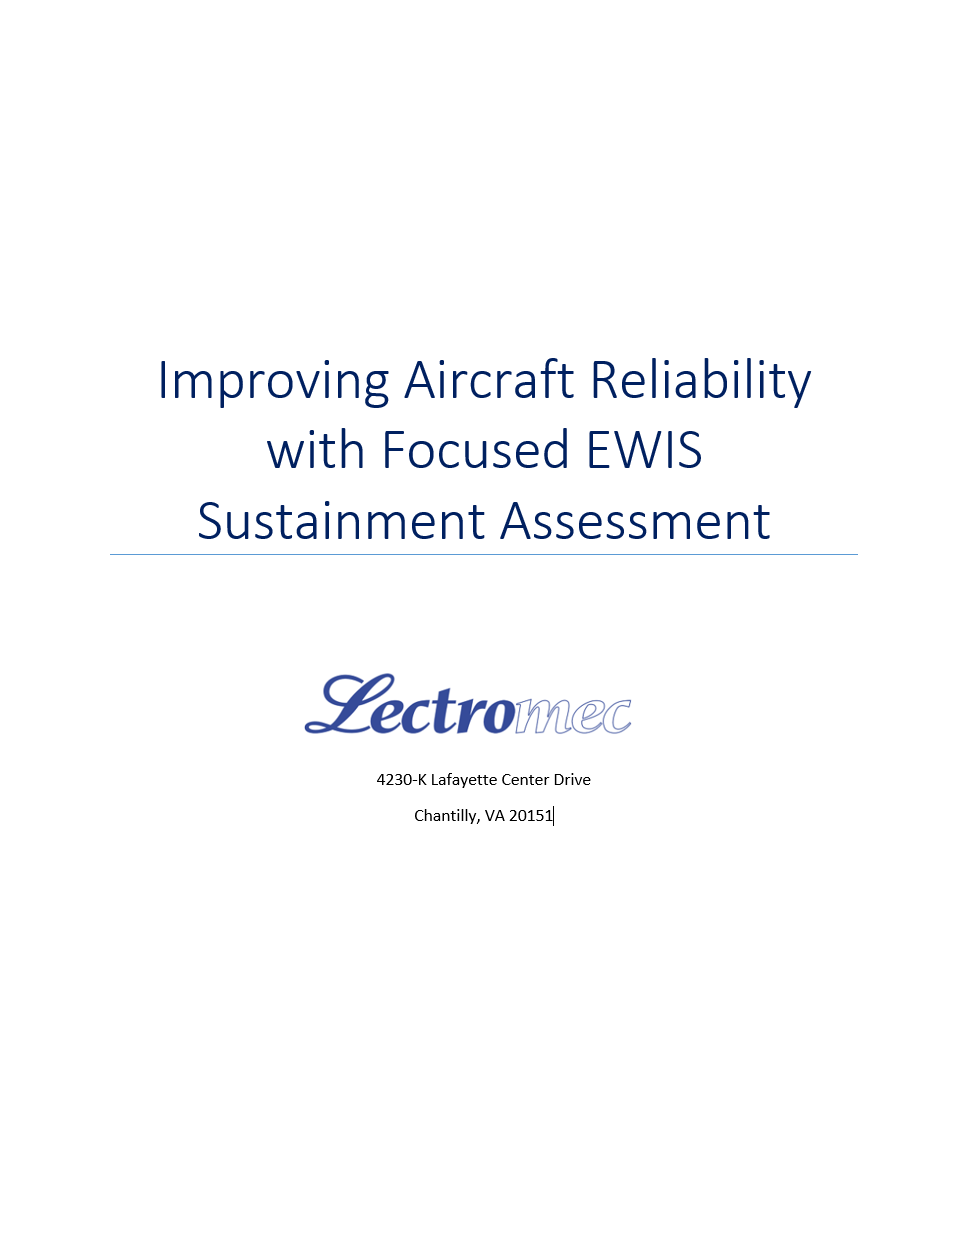 Even in the best conditions, it is not possible to determine the condition of a wire system solely based on visual inspection.  Lectromec can help you identify the true condition of your EWIS to support your service life extension program.